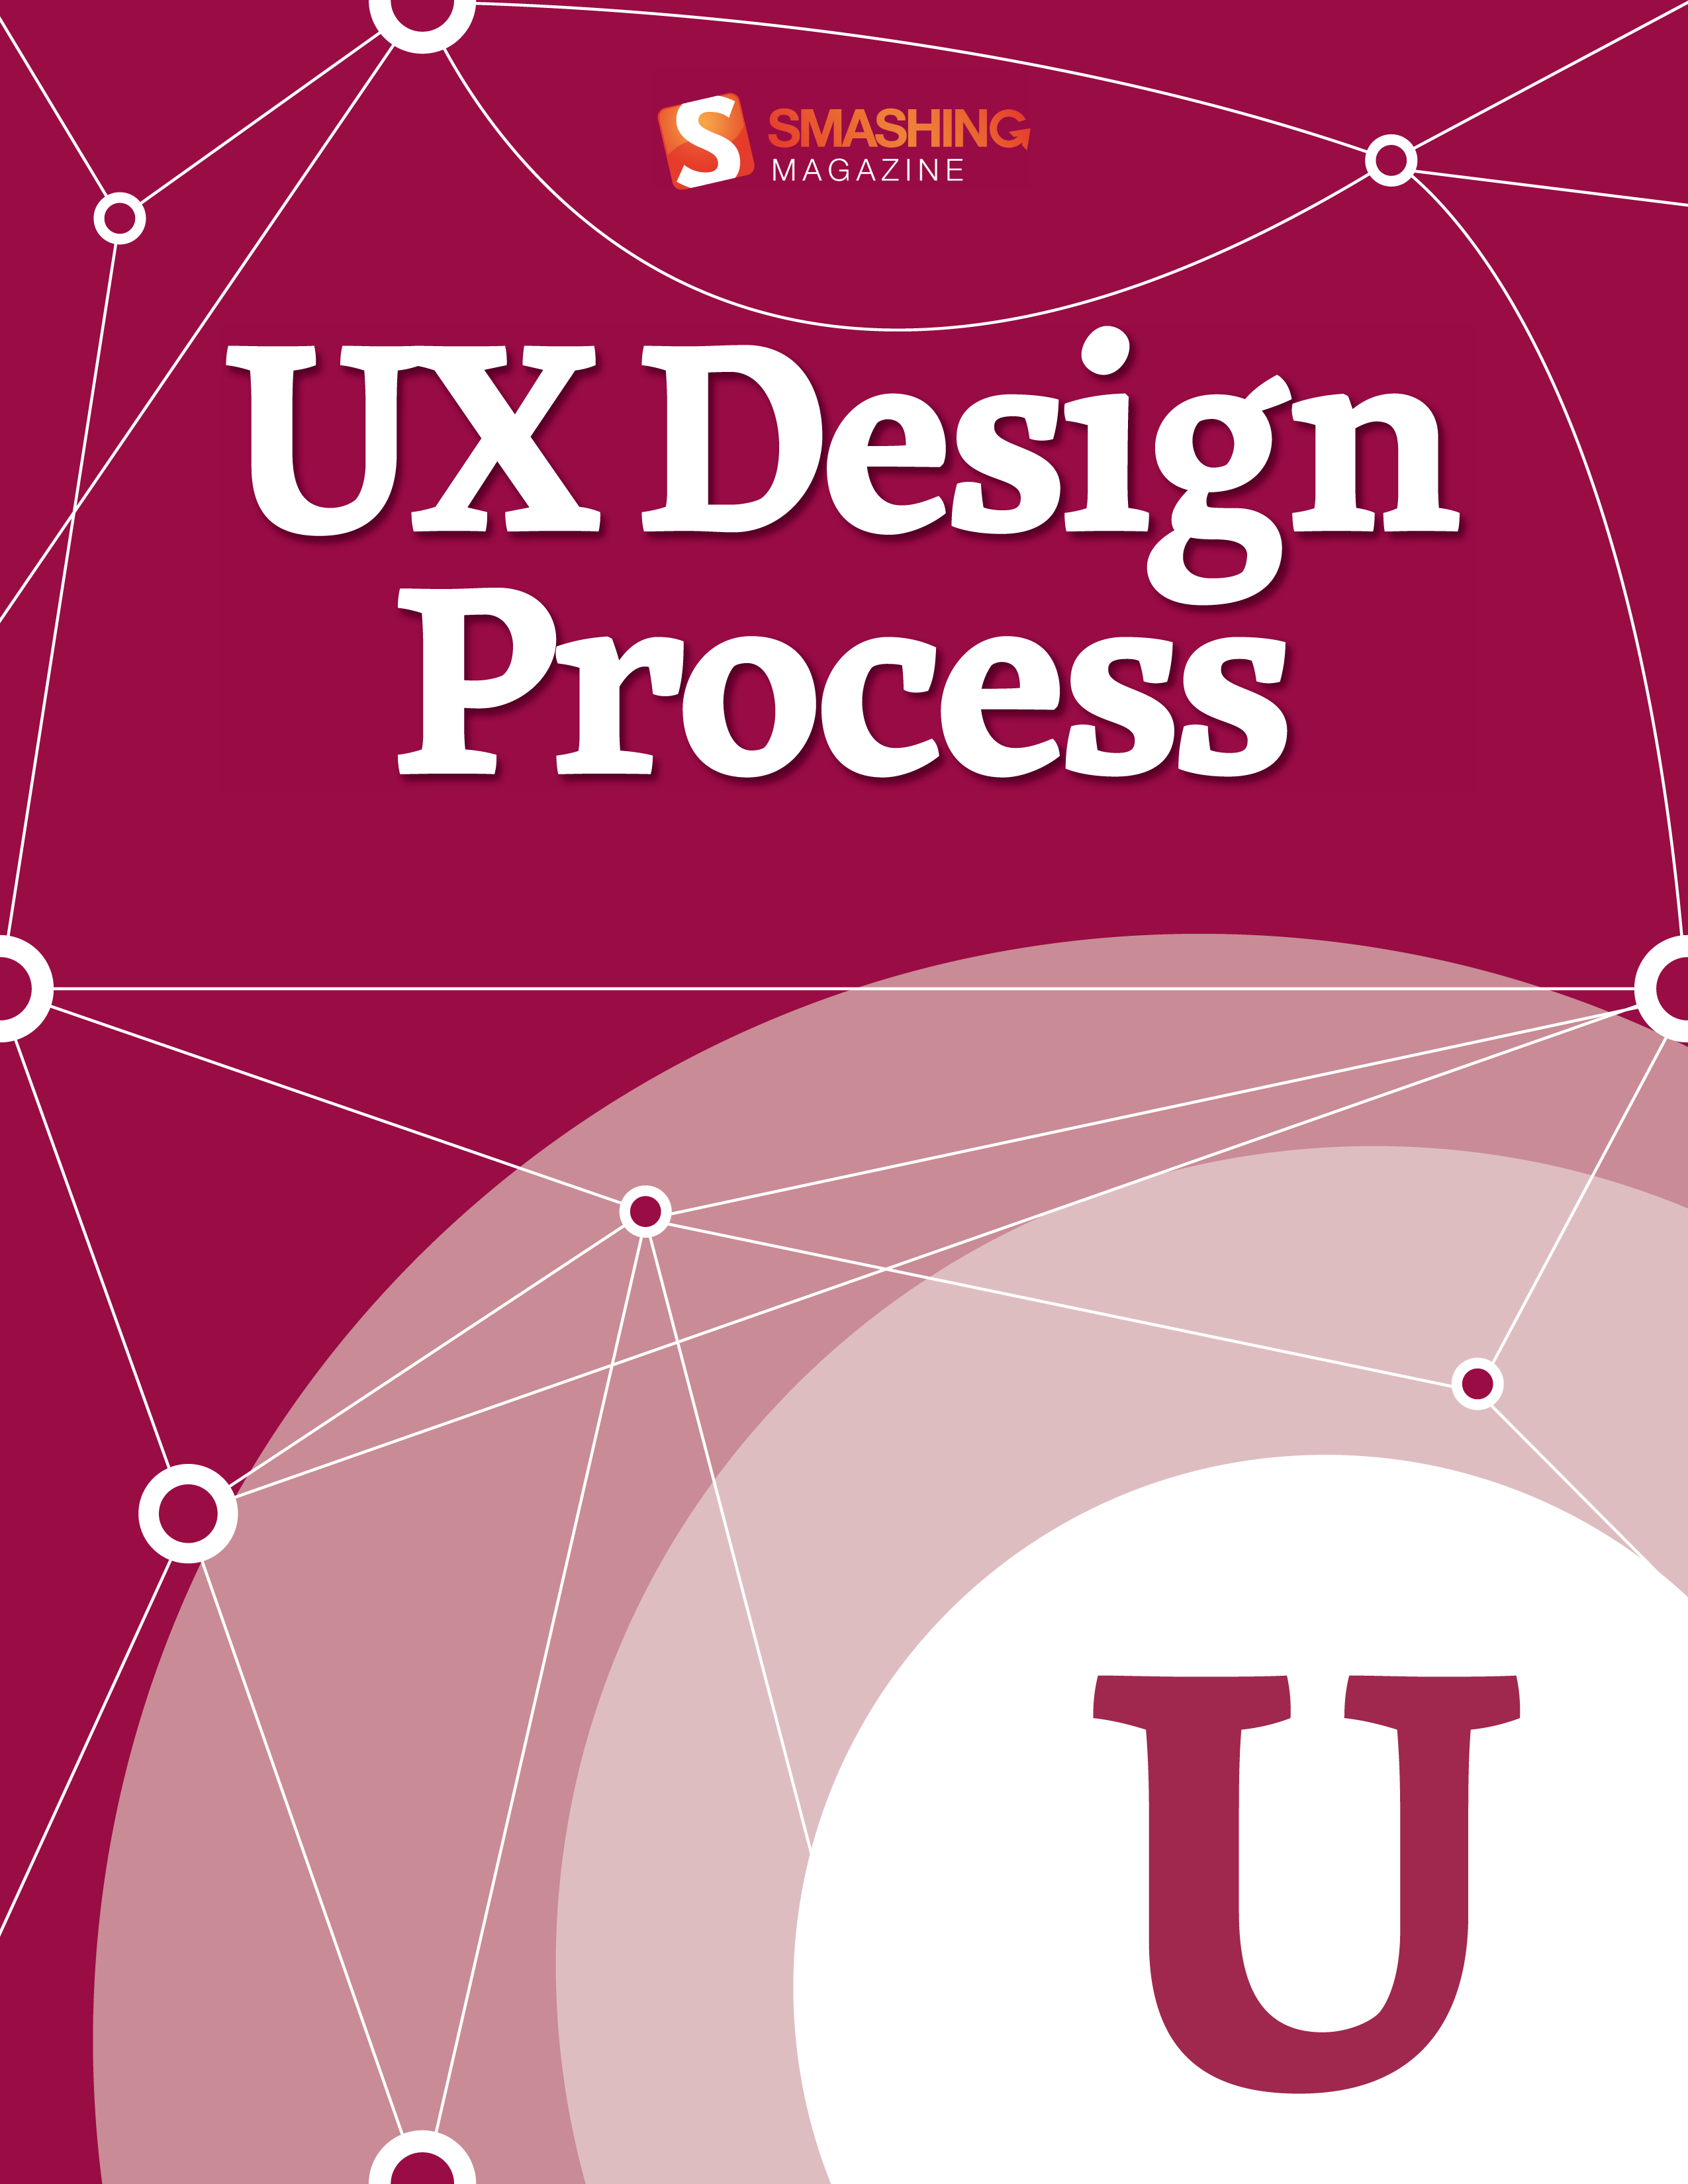 UX Design Process By: Smashing Magazine